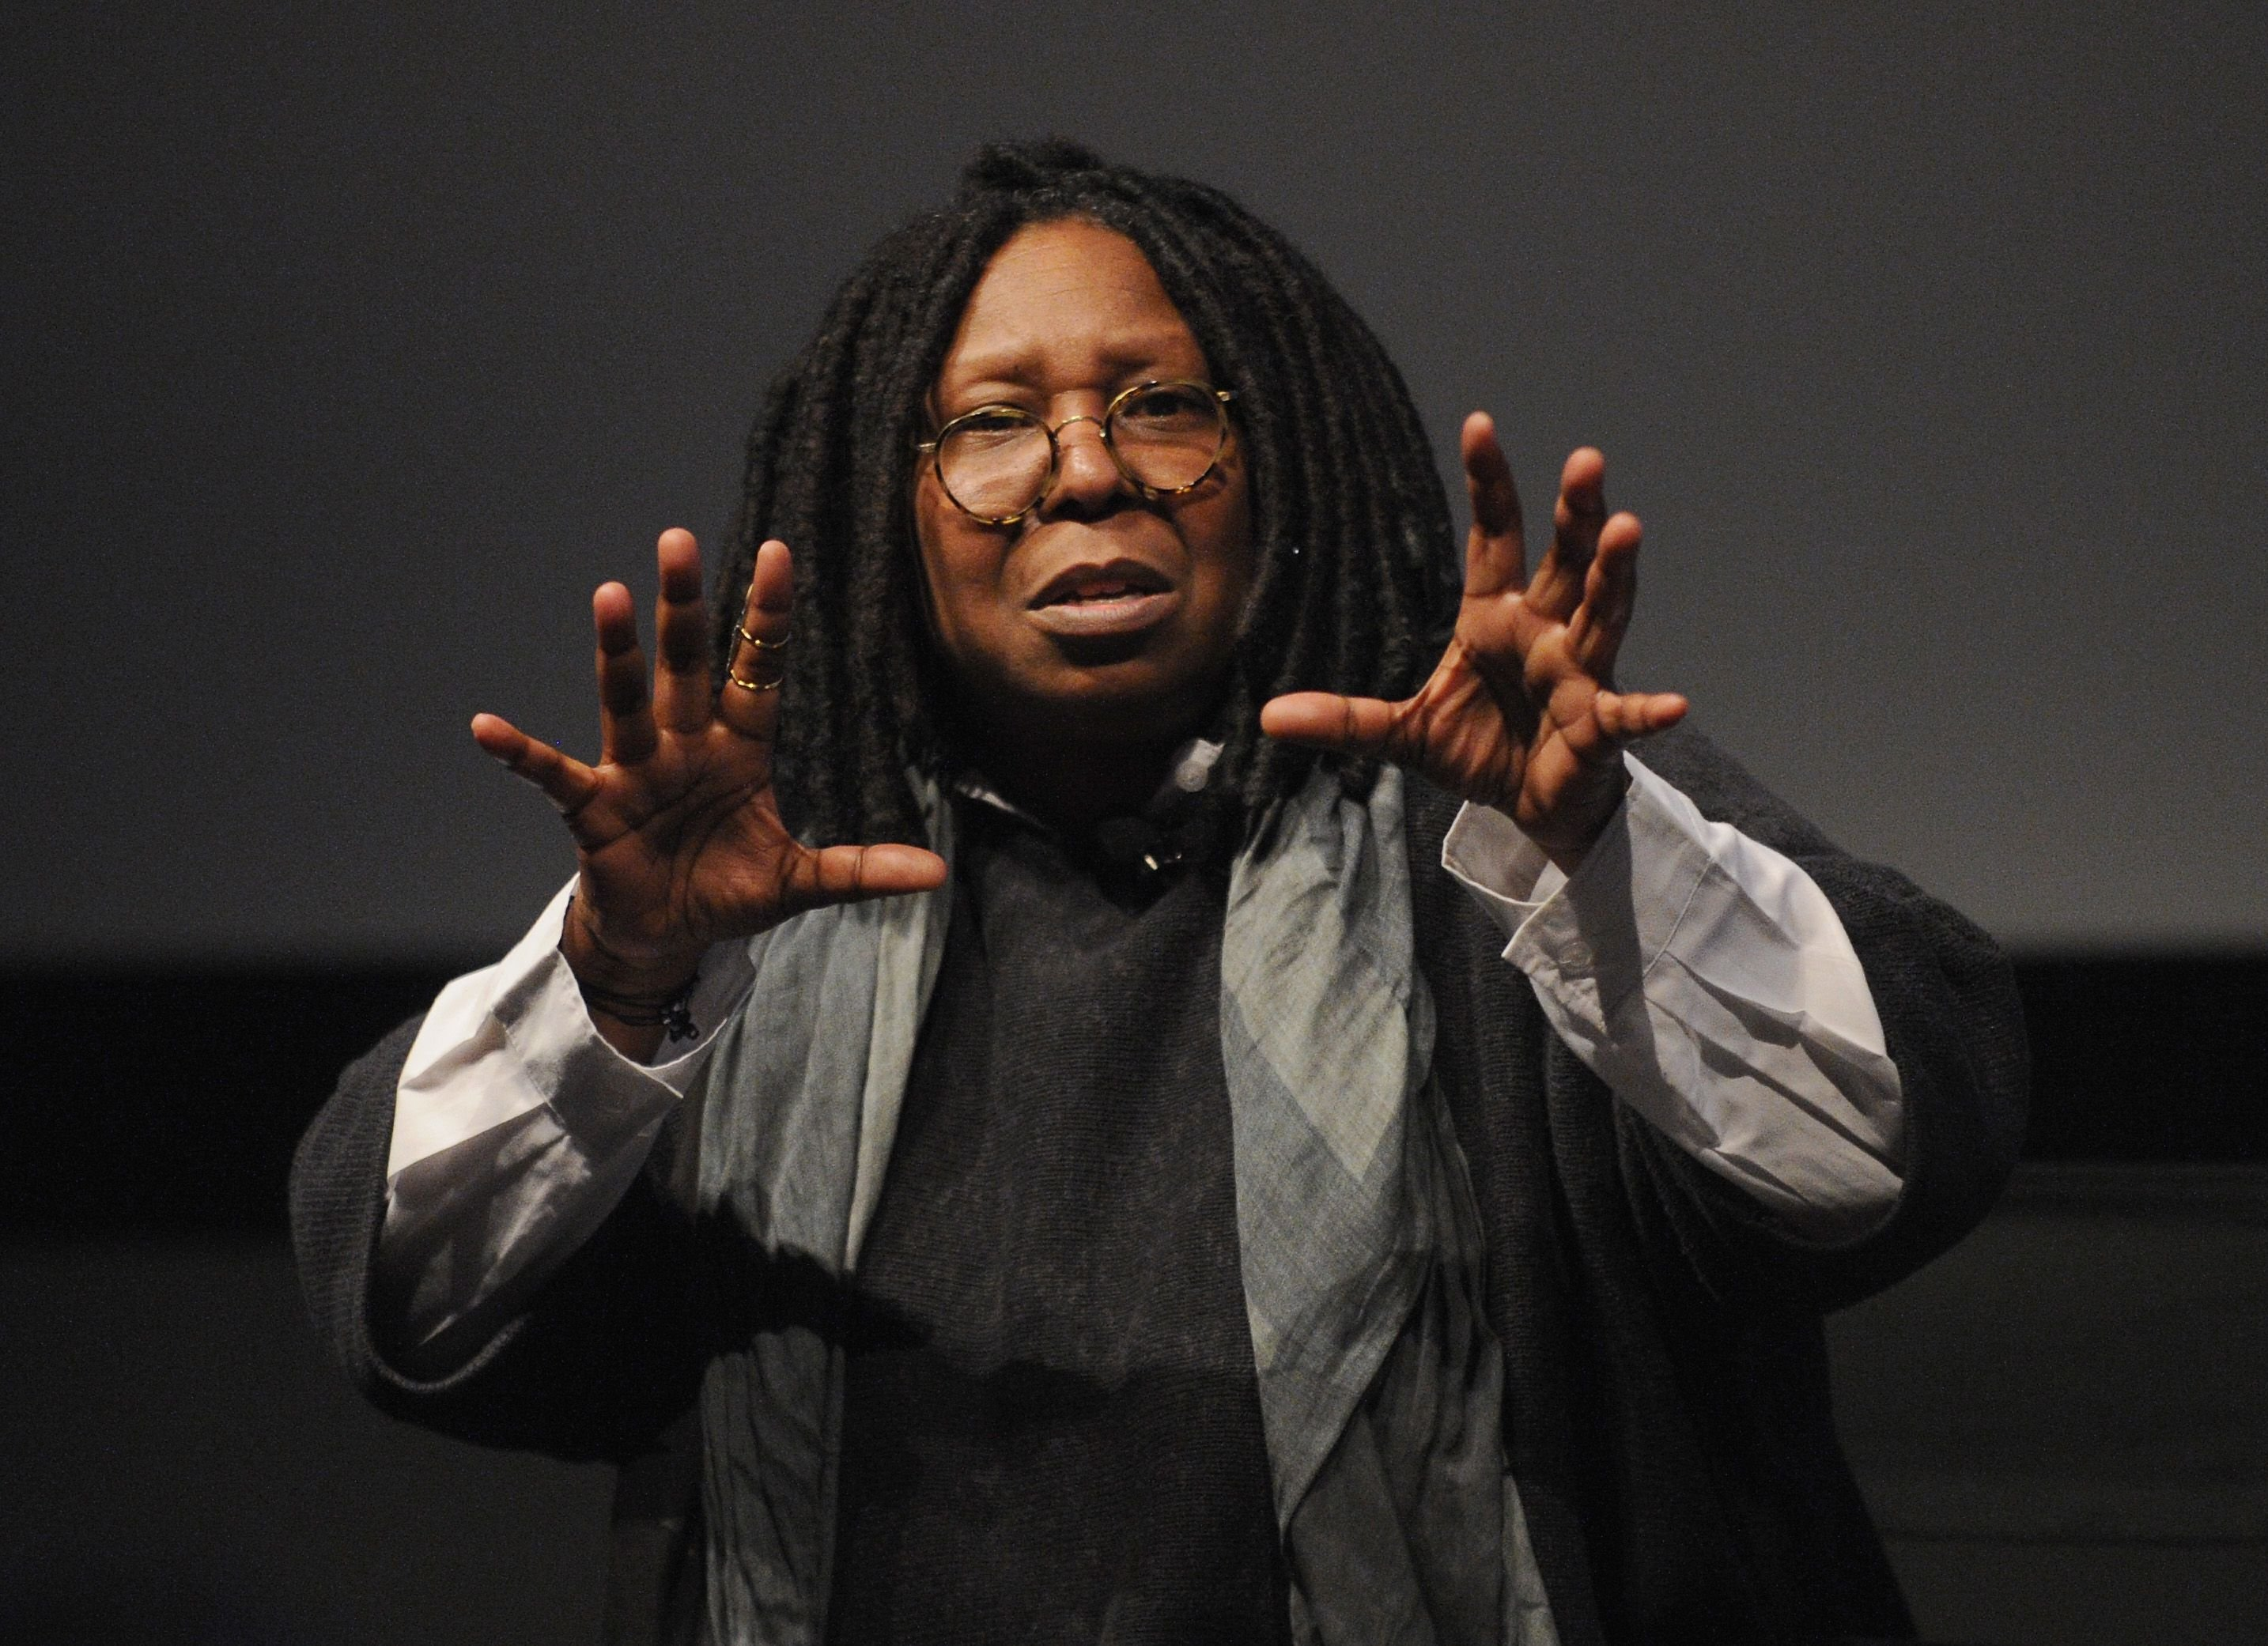 """Whoopi Goldberg at the """"I Got Somethin' To Tell You"""" screening and Q+A at SVA Theatre 1 on April 22, 2013   Photo: Getty Images"""